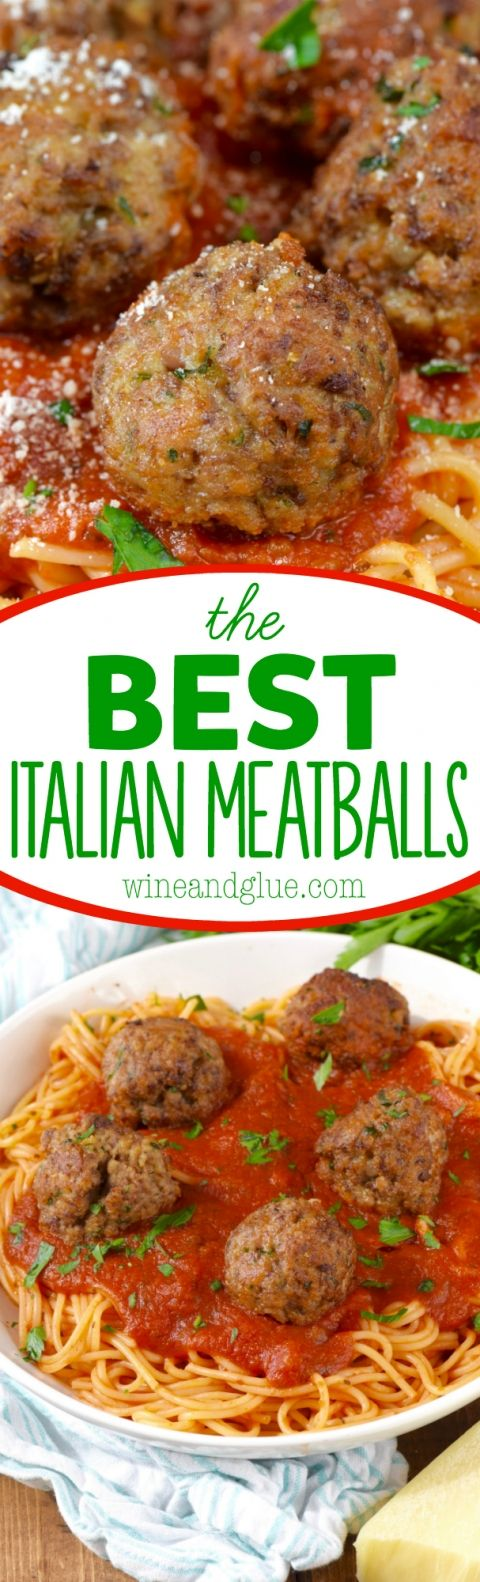 These are the BEST Italian Meatballs! My Italian grandmother's recipe, the word perfect doesn't even begin to cover it. (Sausage Parmesan Pasta)